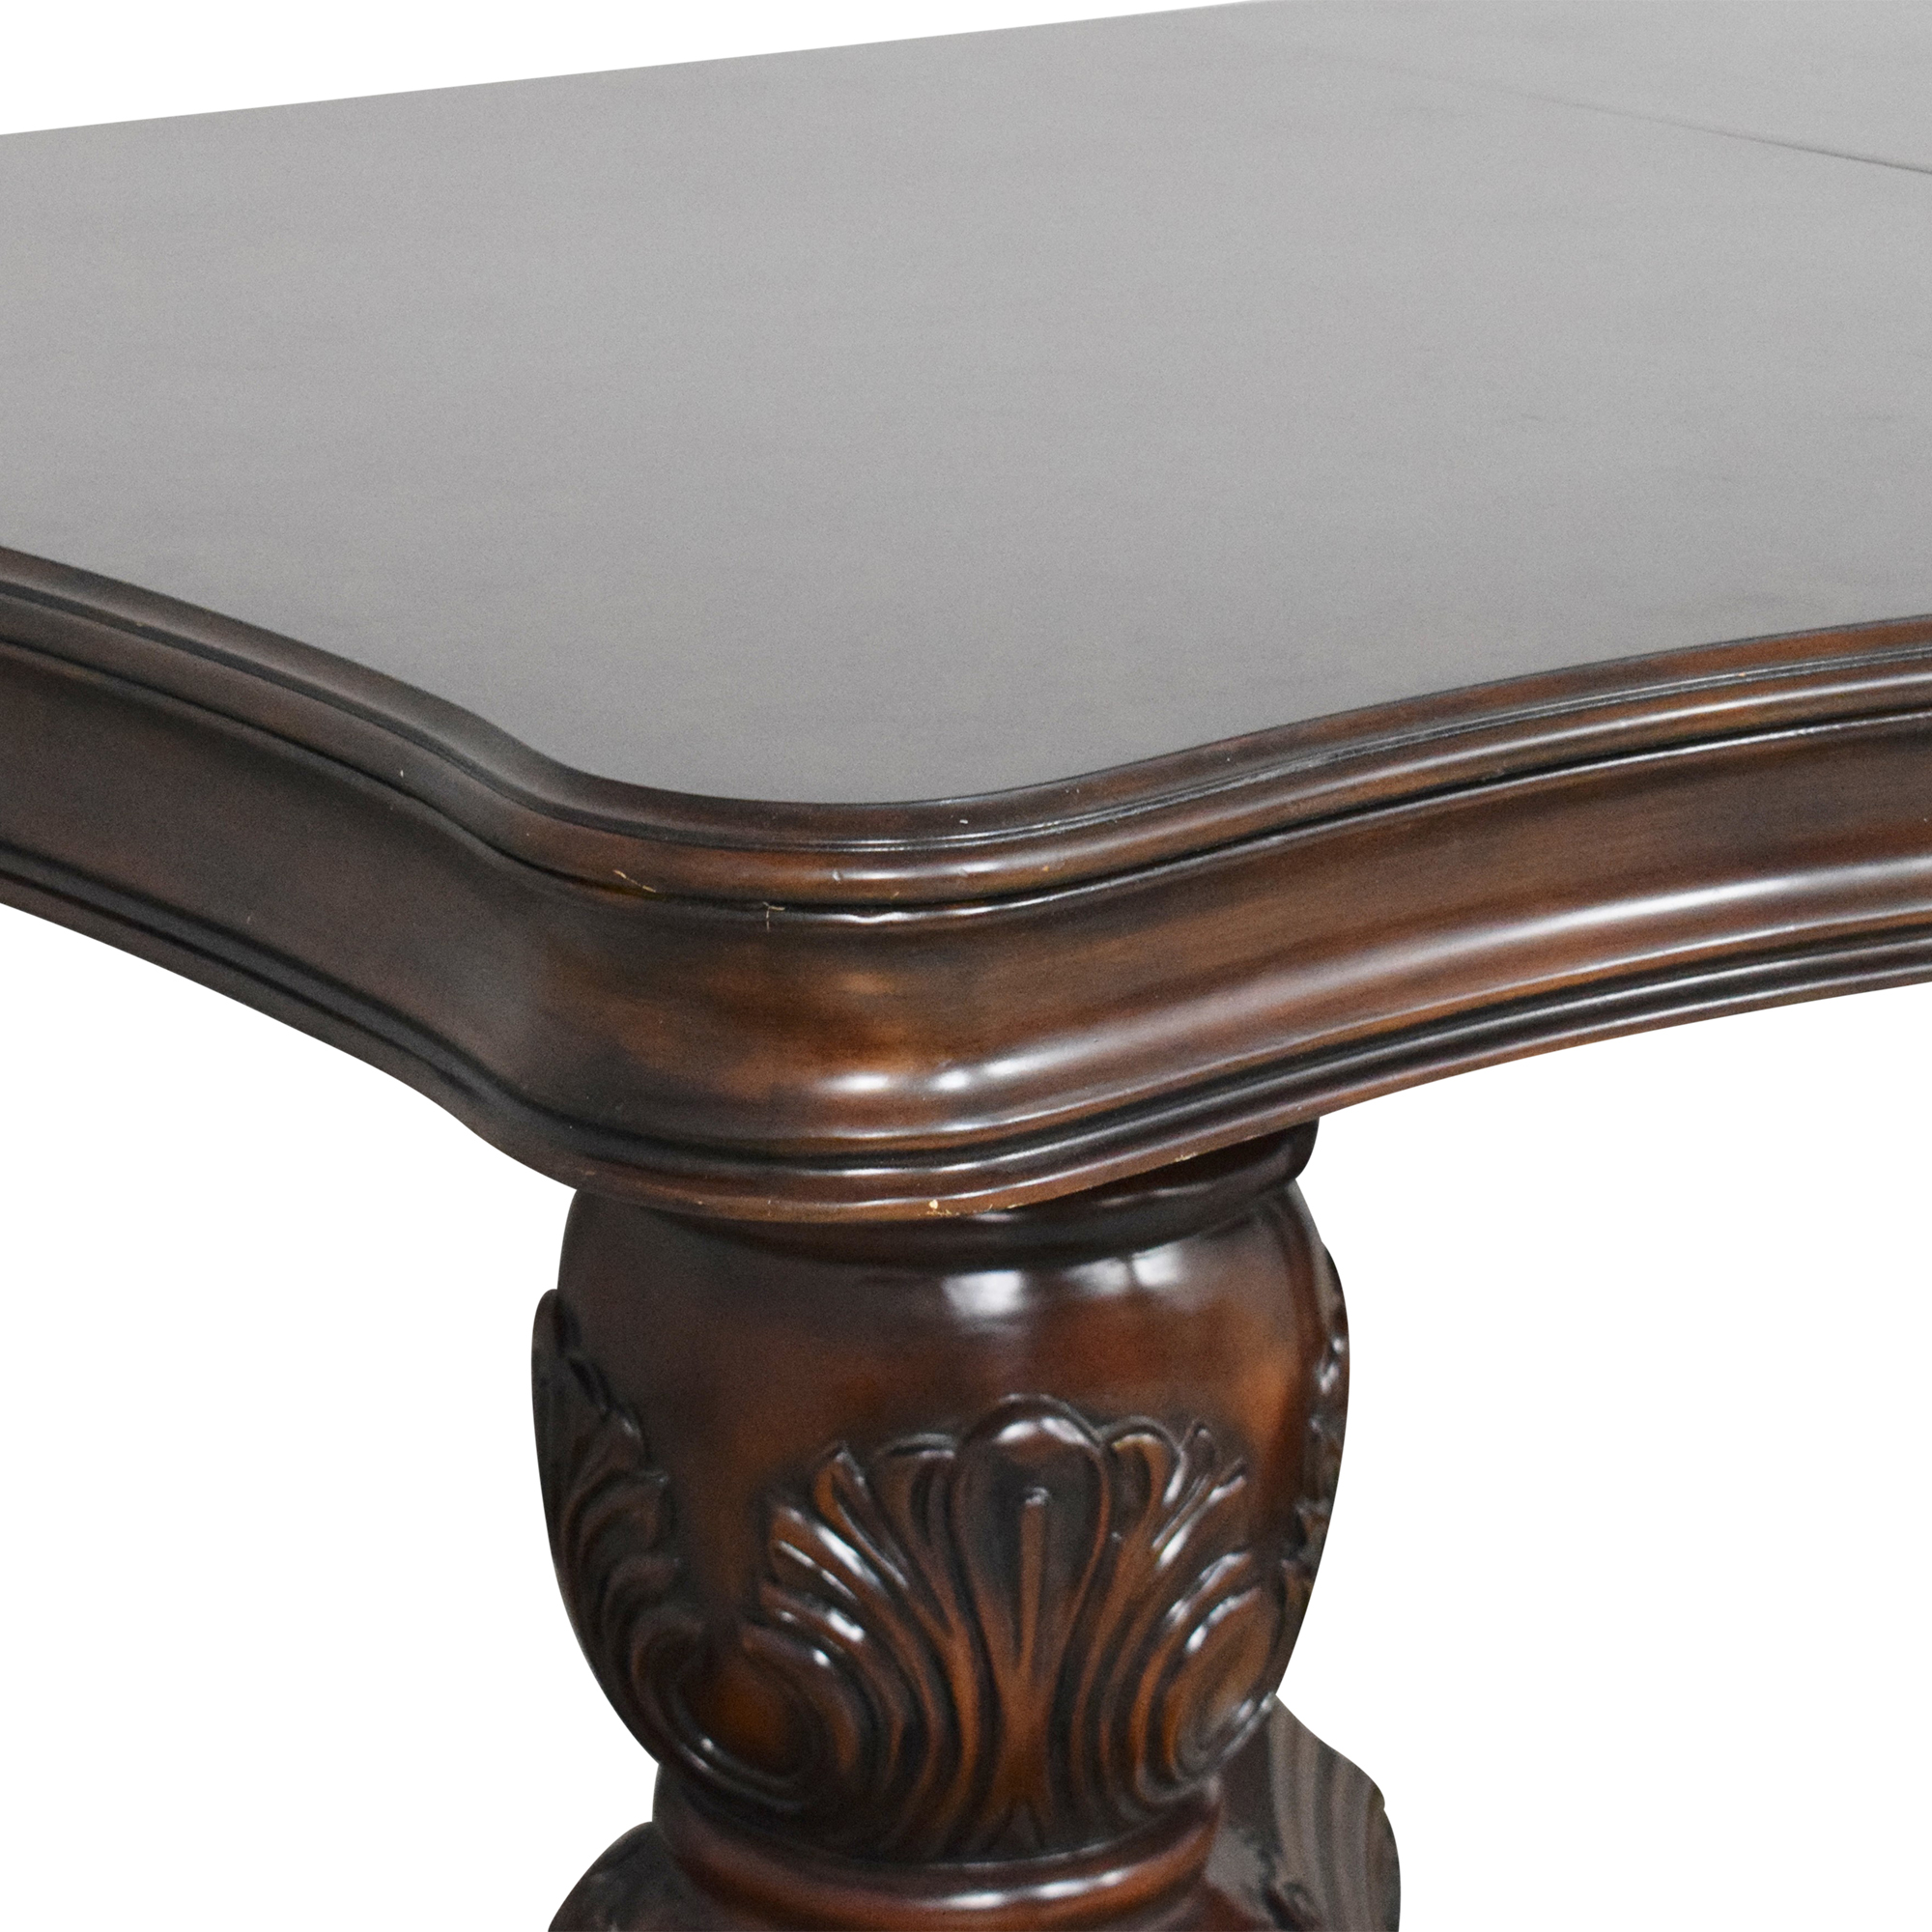 buy Raymour & Flanigan Double Pedestal Dining Table Raymour & Flanigan Dinner Tables